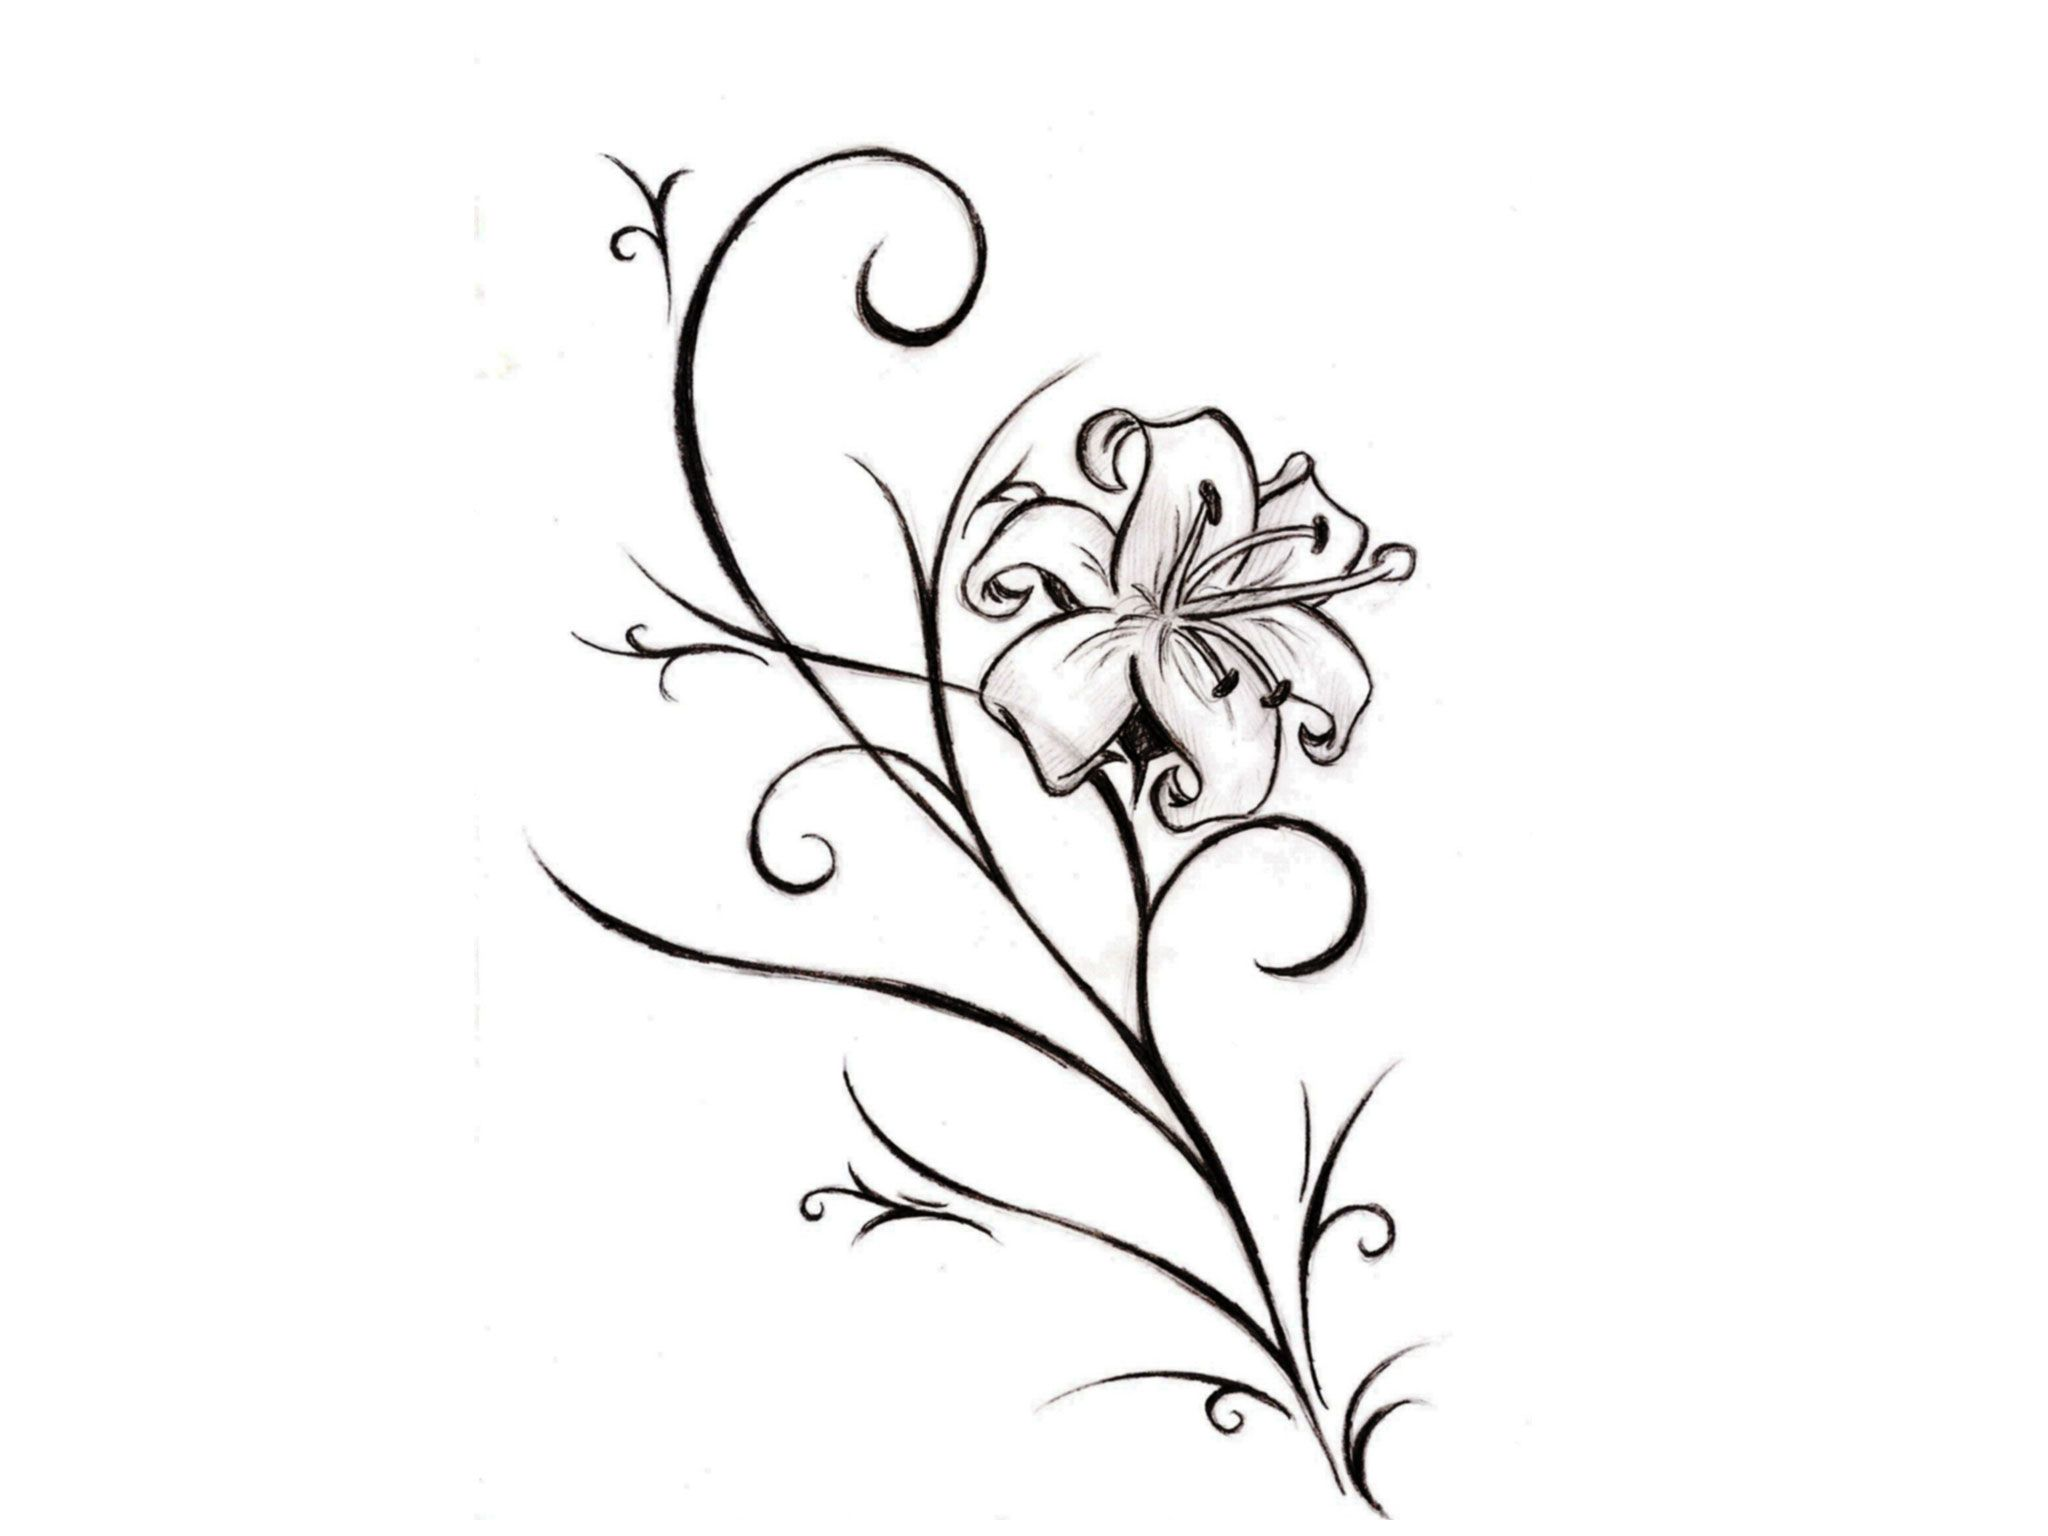 Free designs like a real lily flower tattoo wallpaper wallpaper free designs like a real lily flower tattoo wallpaper wallpaper izmirmasajfo